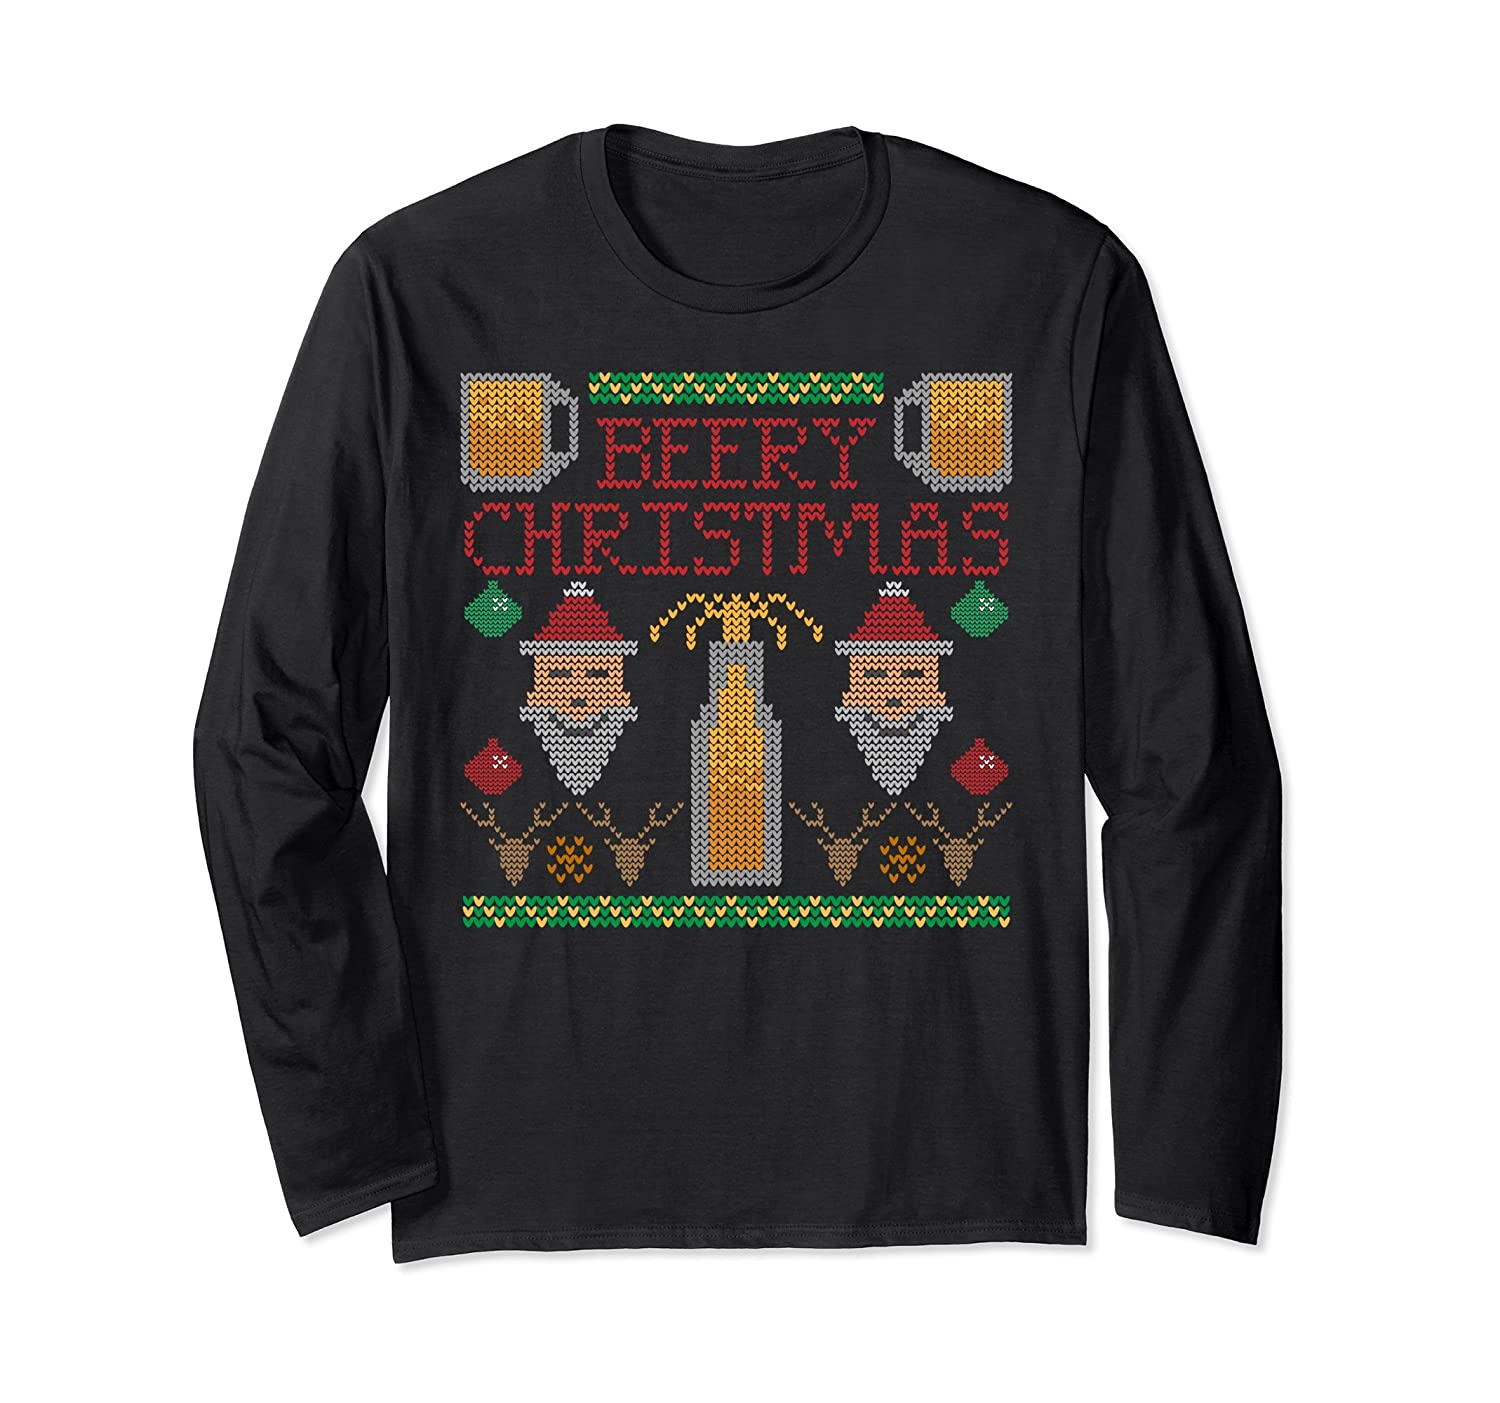 Funny Drinking Beer Ugly Christmas Sweater Long-Sleeve Tee